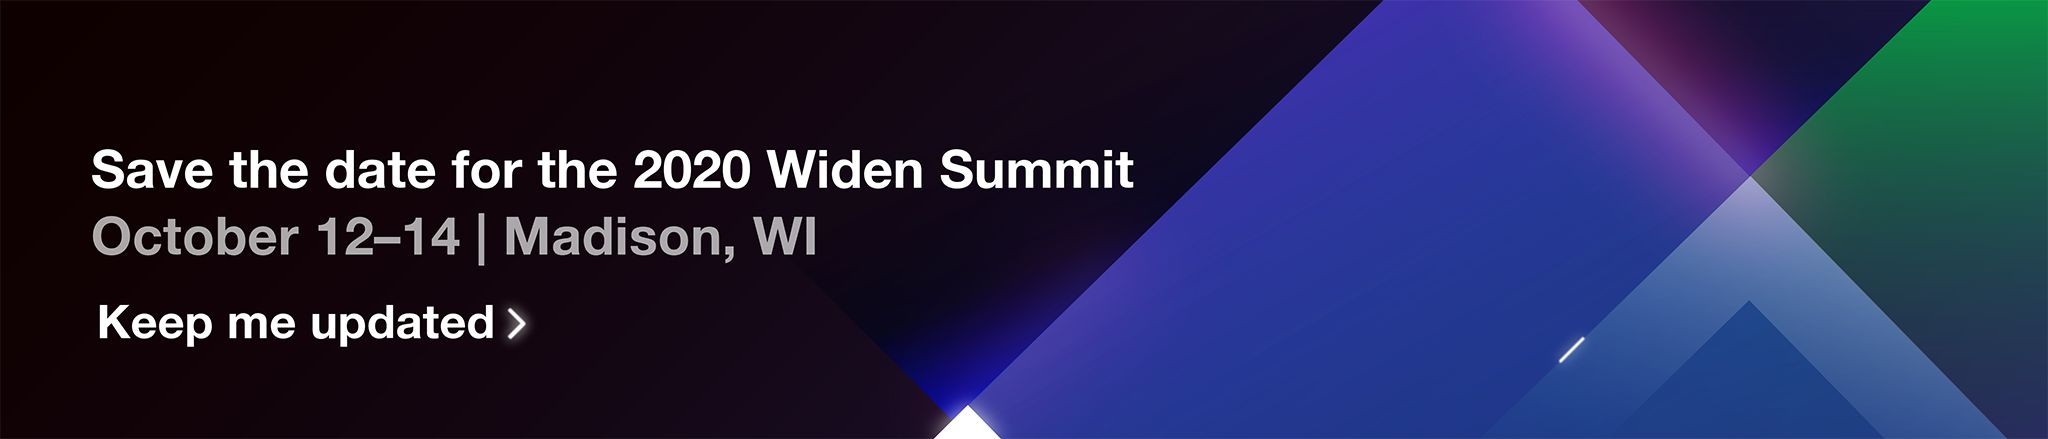 Summit 2020 Save the date Email Banner 700x150